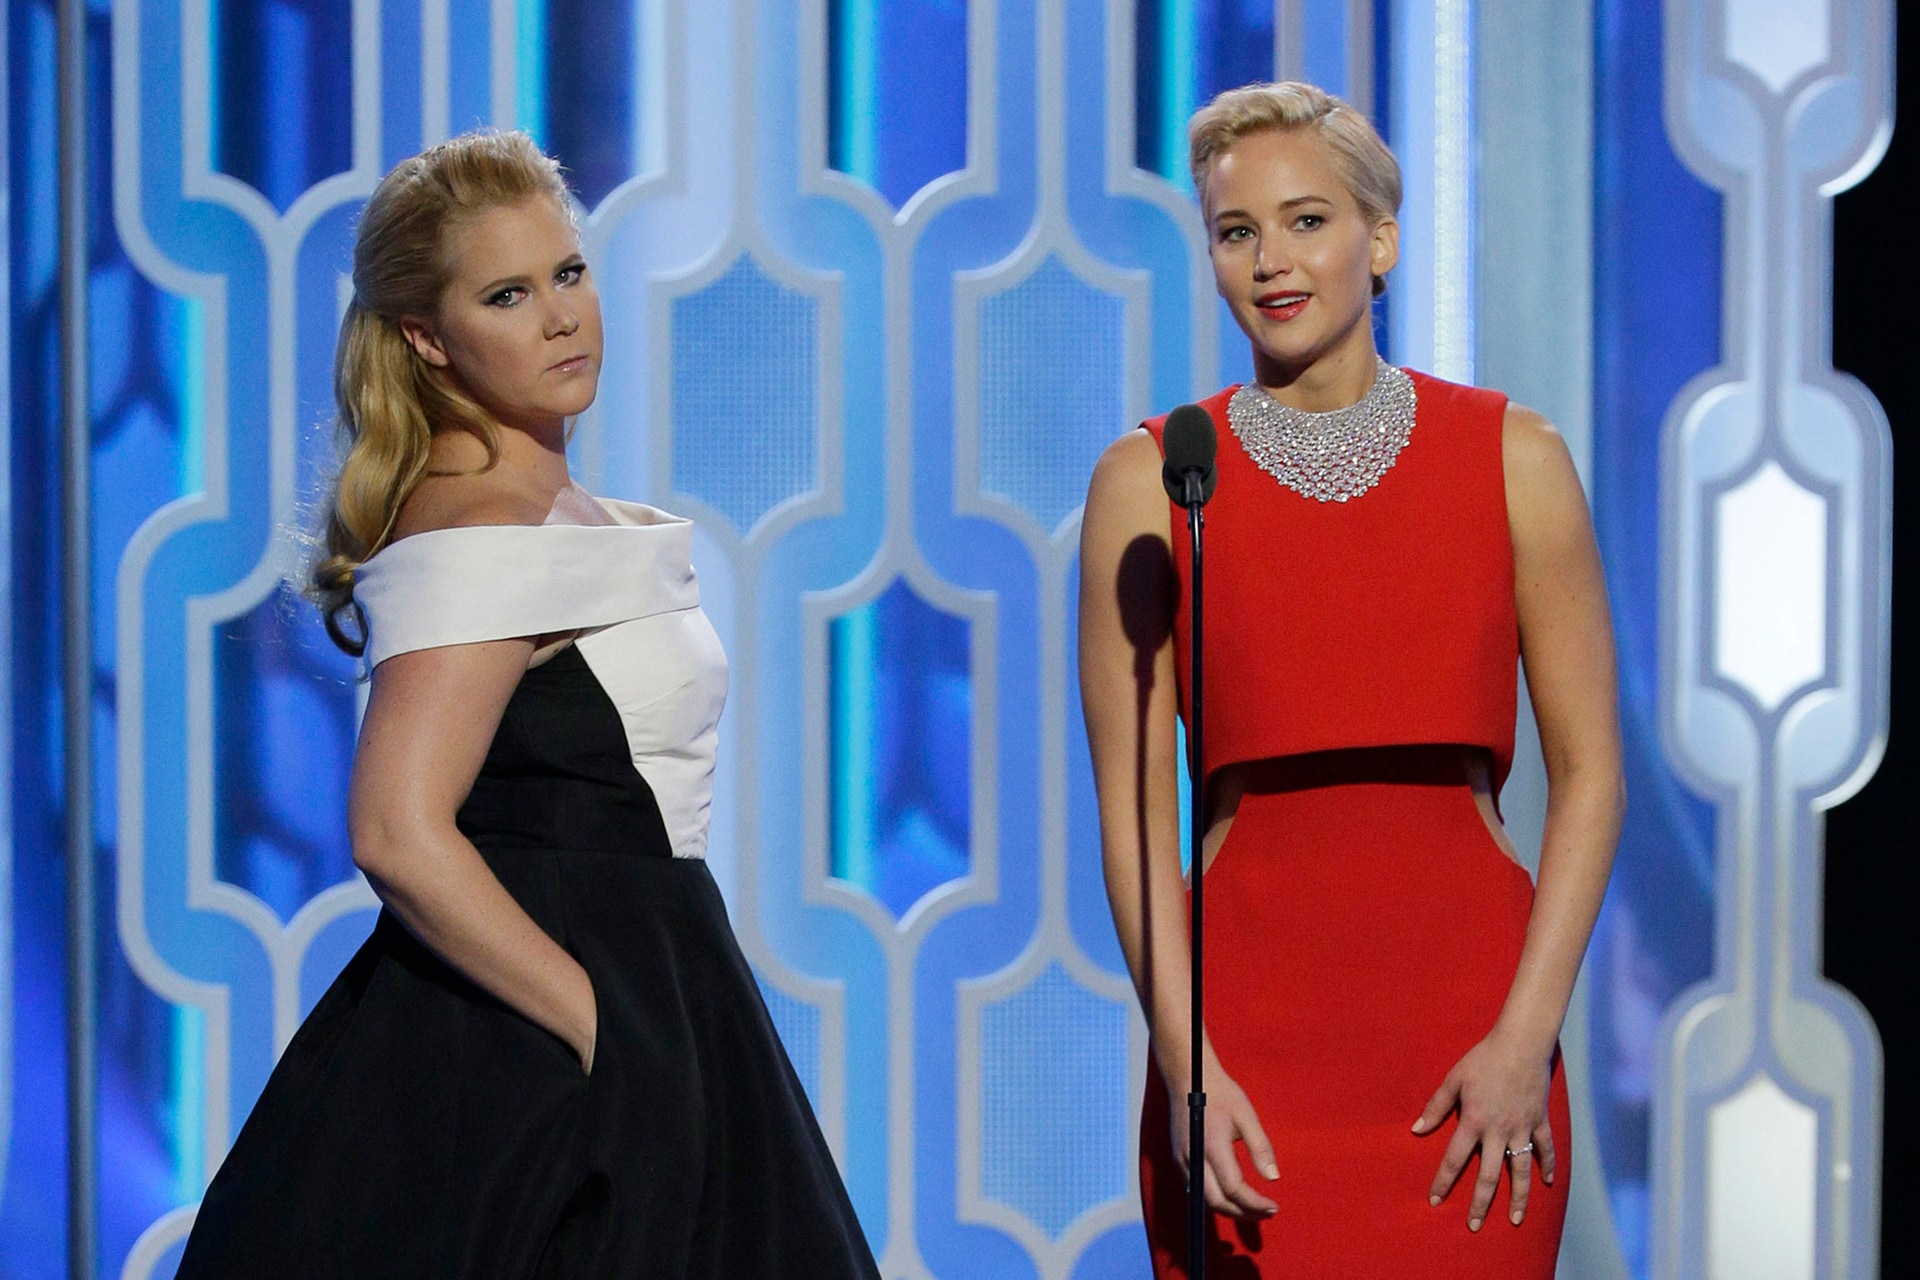 Jennifer Lawrence invited Amy Schumer to dinner and then uninvited her moments later